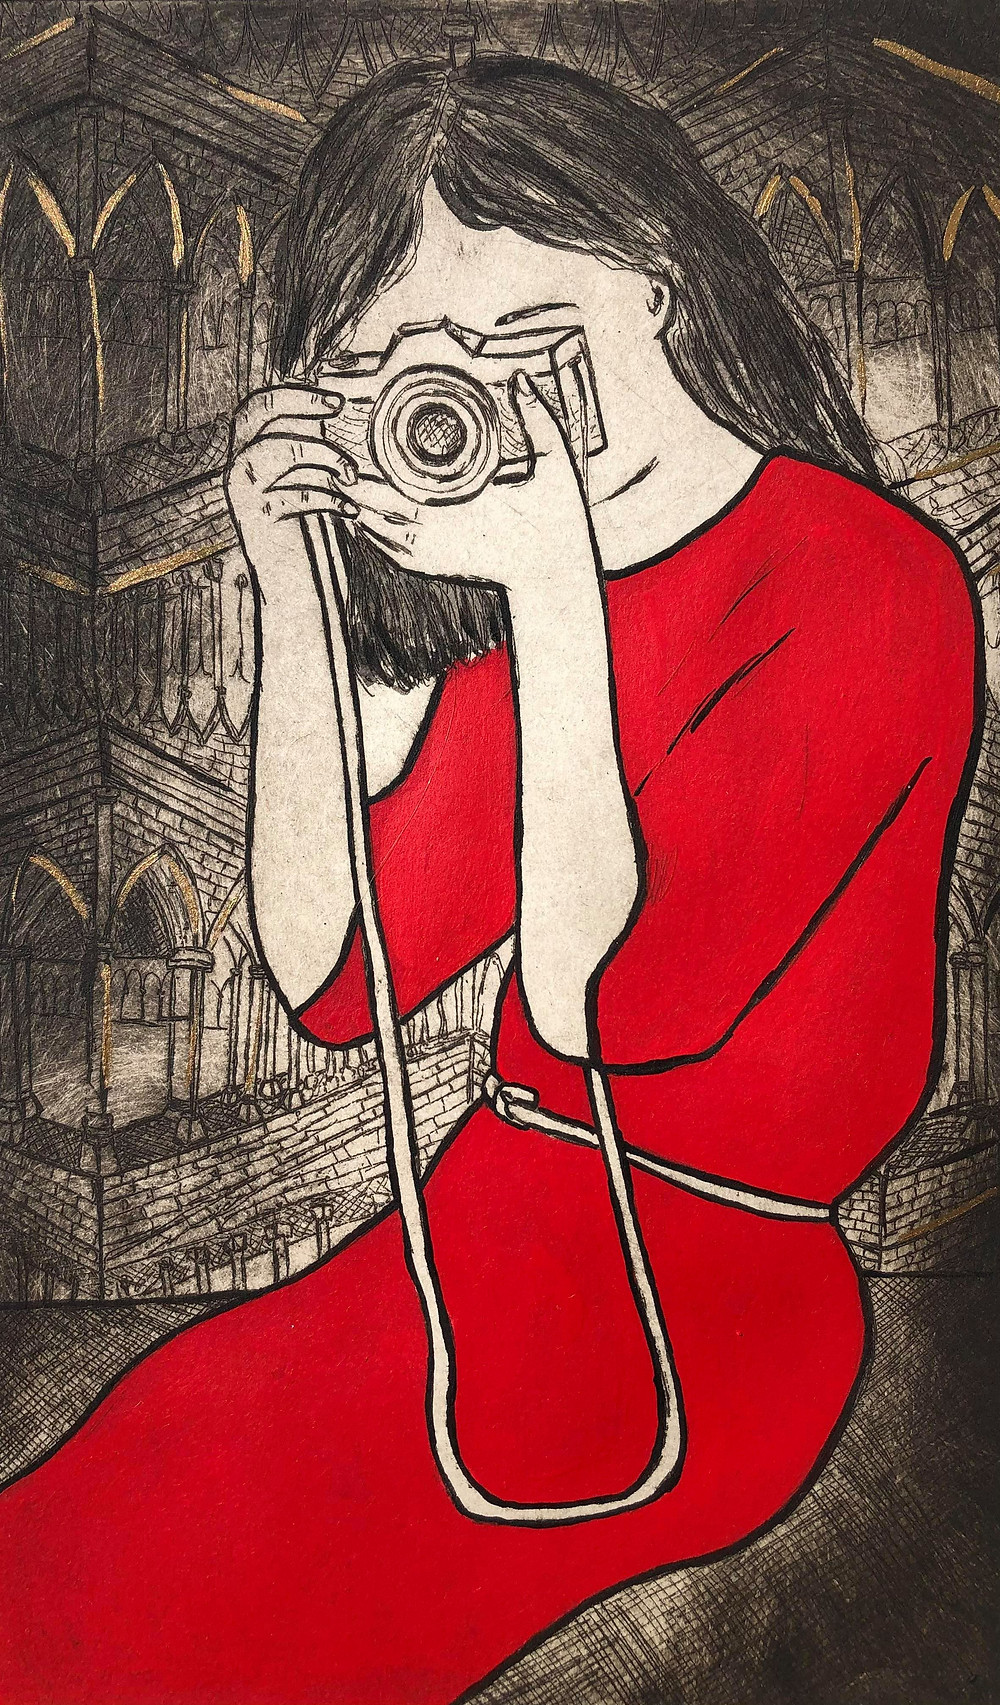 camera lady, red dress, lady in red, gothic, gothic architecture, Europe city, europe buildings, travel girl, lady travelling, travel art